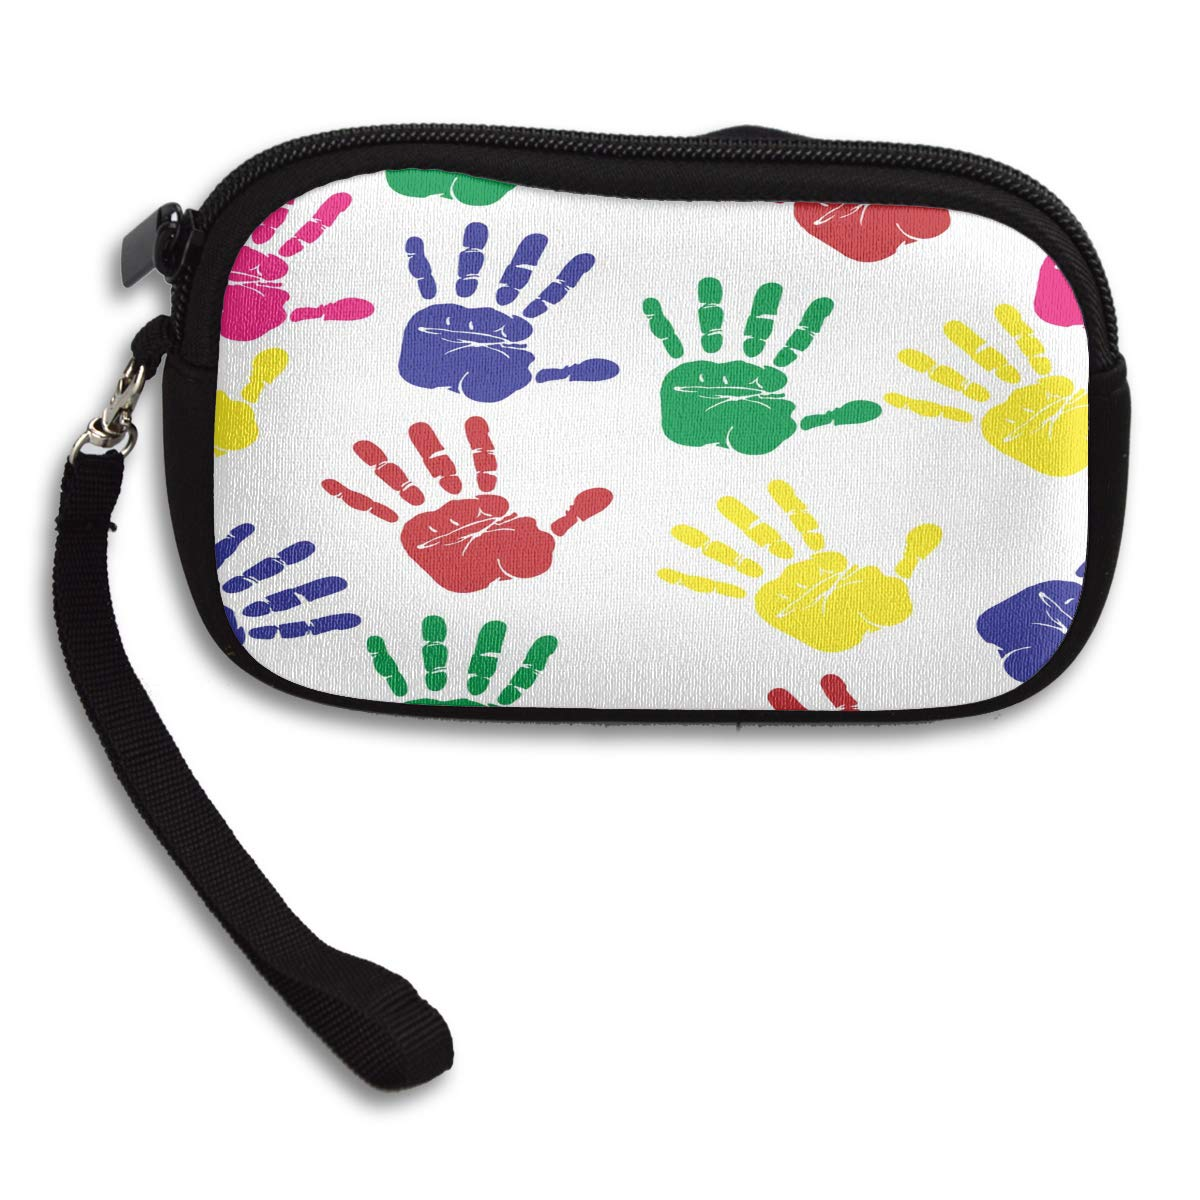 Small Purse Hand Prints Colorful Special Coin Wallets for Women